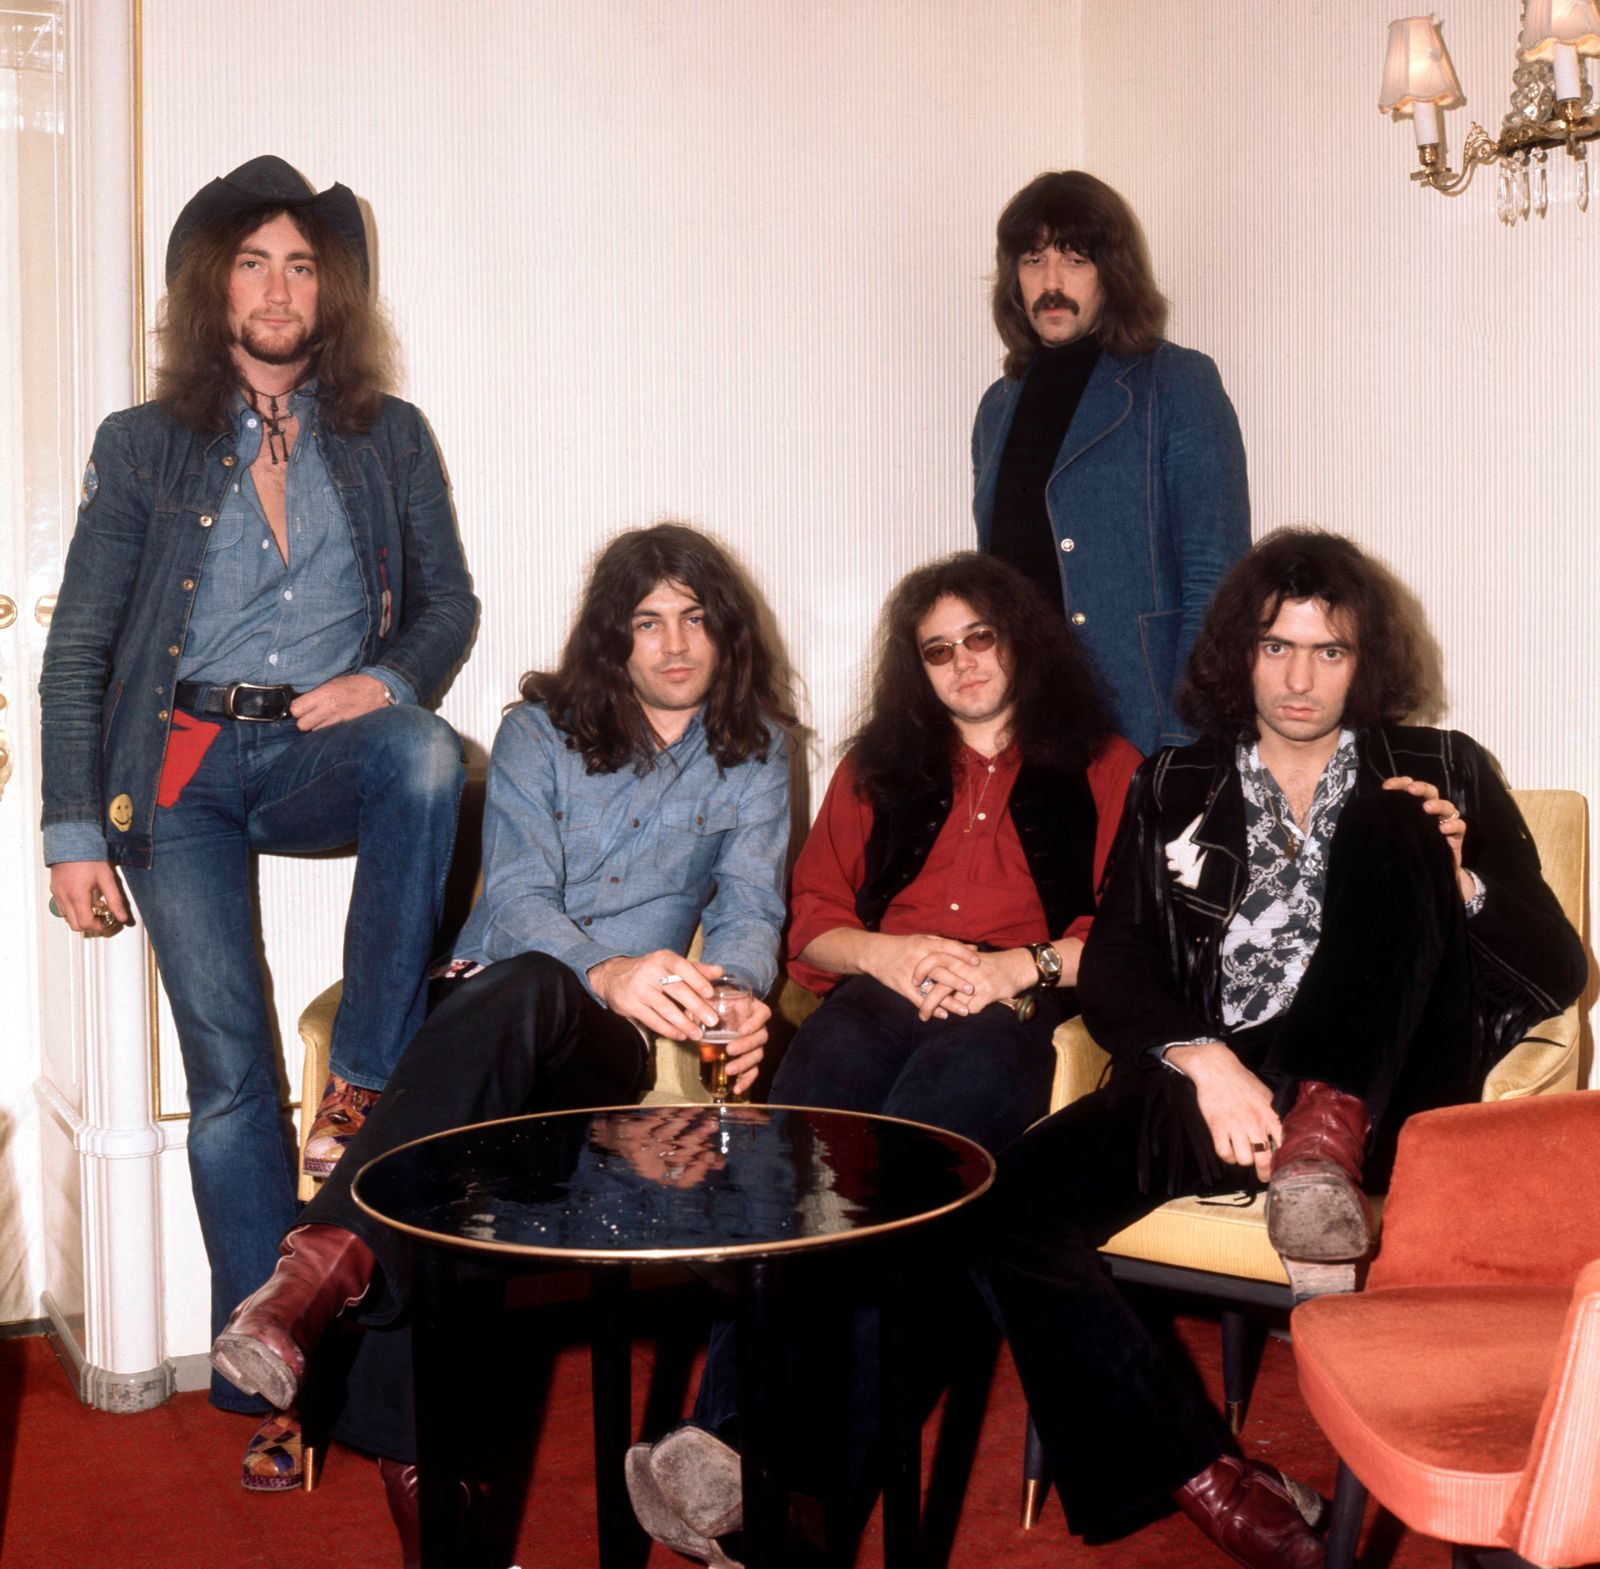 Photo of DEEP PURPLE and Ritchie BLACKMORE and Roger GLOVER and Jon LORD and Ian PAICE and Ian GILLAN